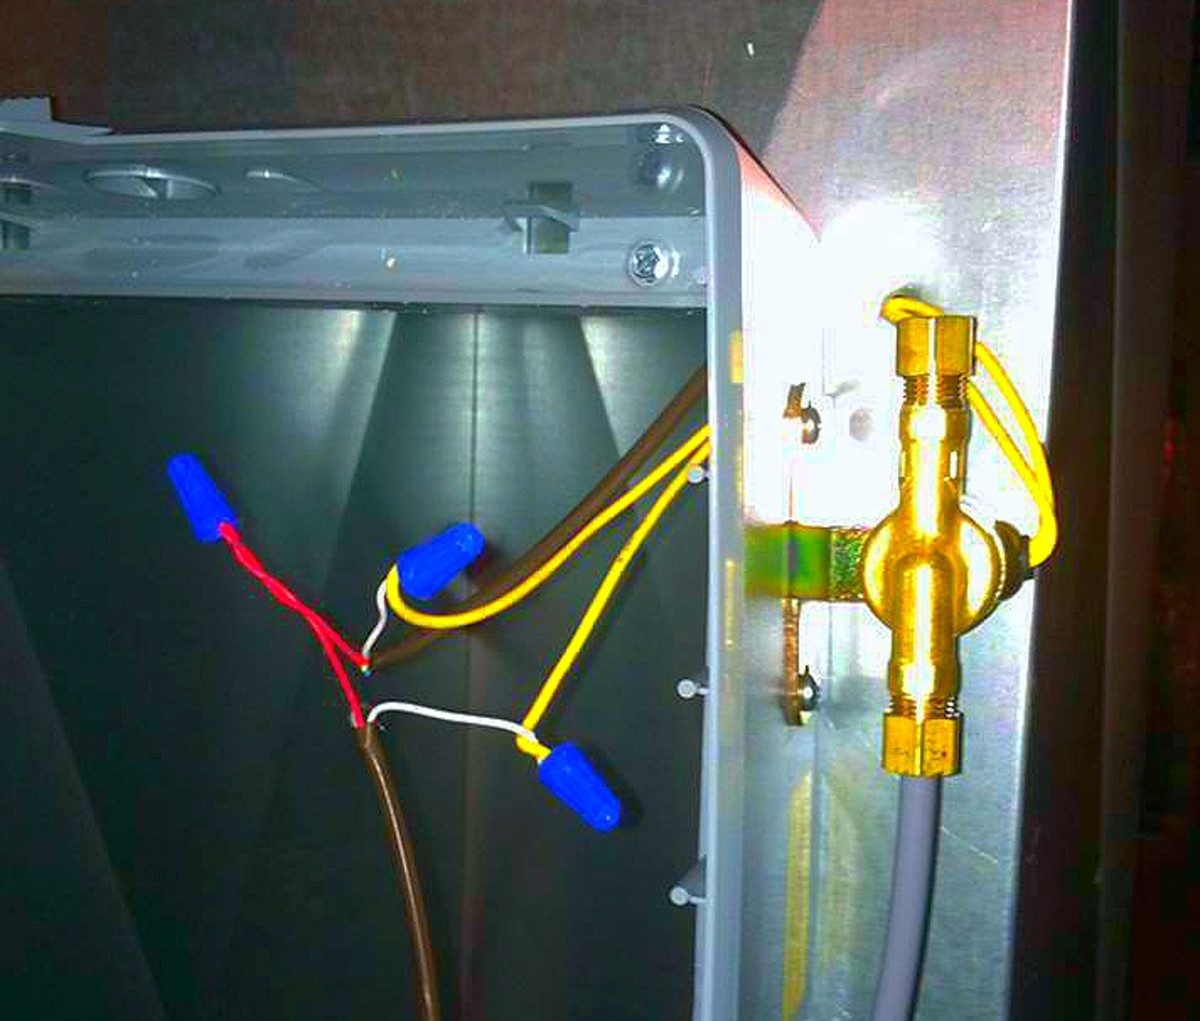 I poked a hole in the duct & inserted the wires from the humidifier to hide my connections. White from humidistat to AprilAire unit and from  AprilAire unit back to the transformer. The red is just a continuation from transformer to humidistat.